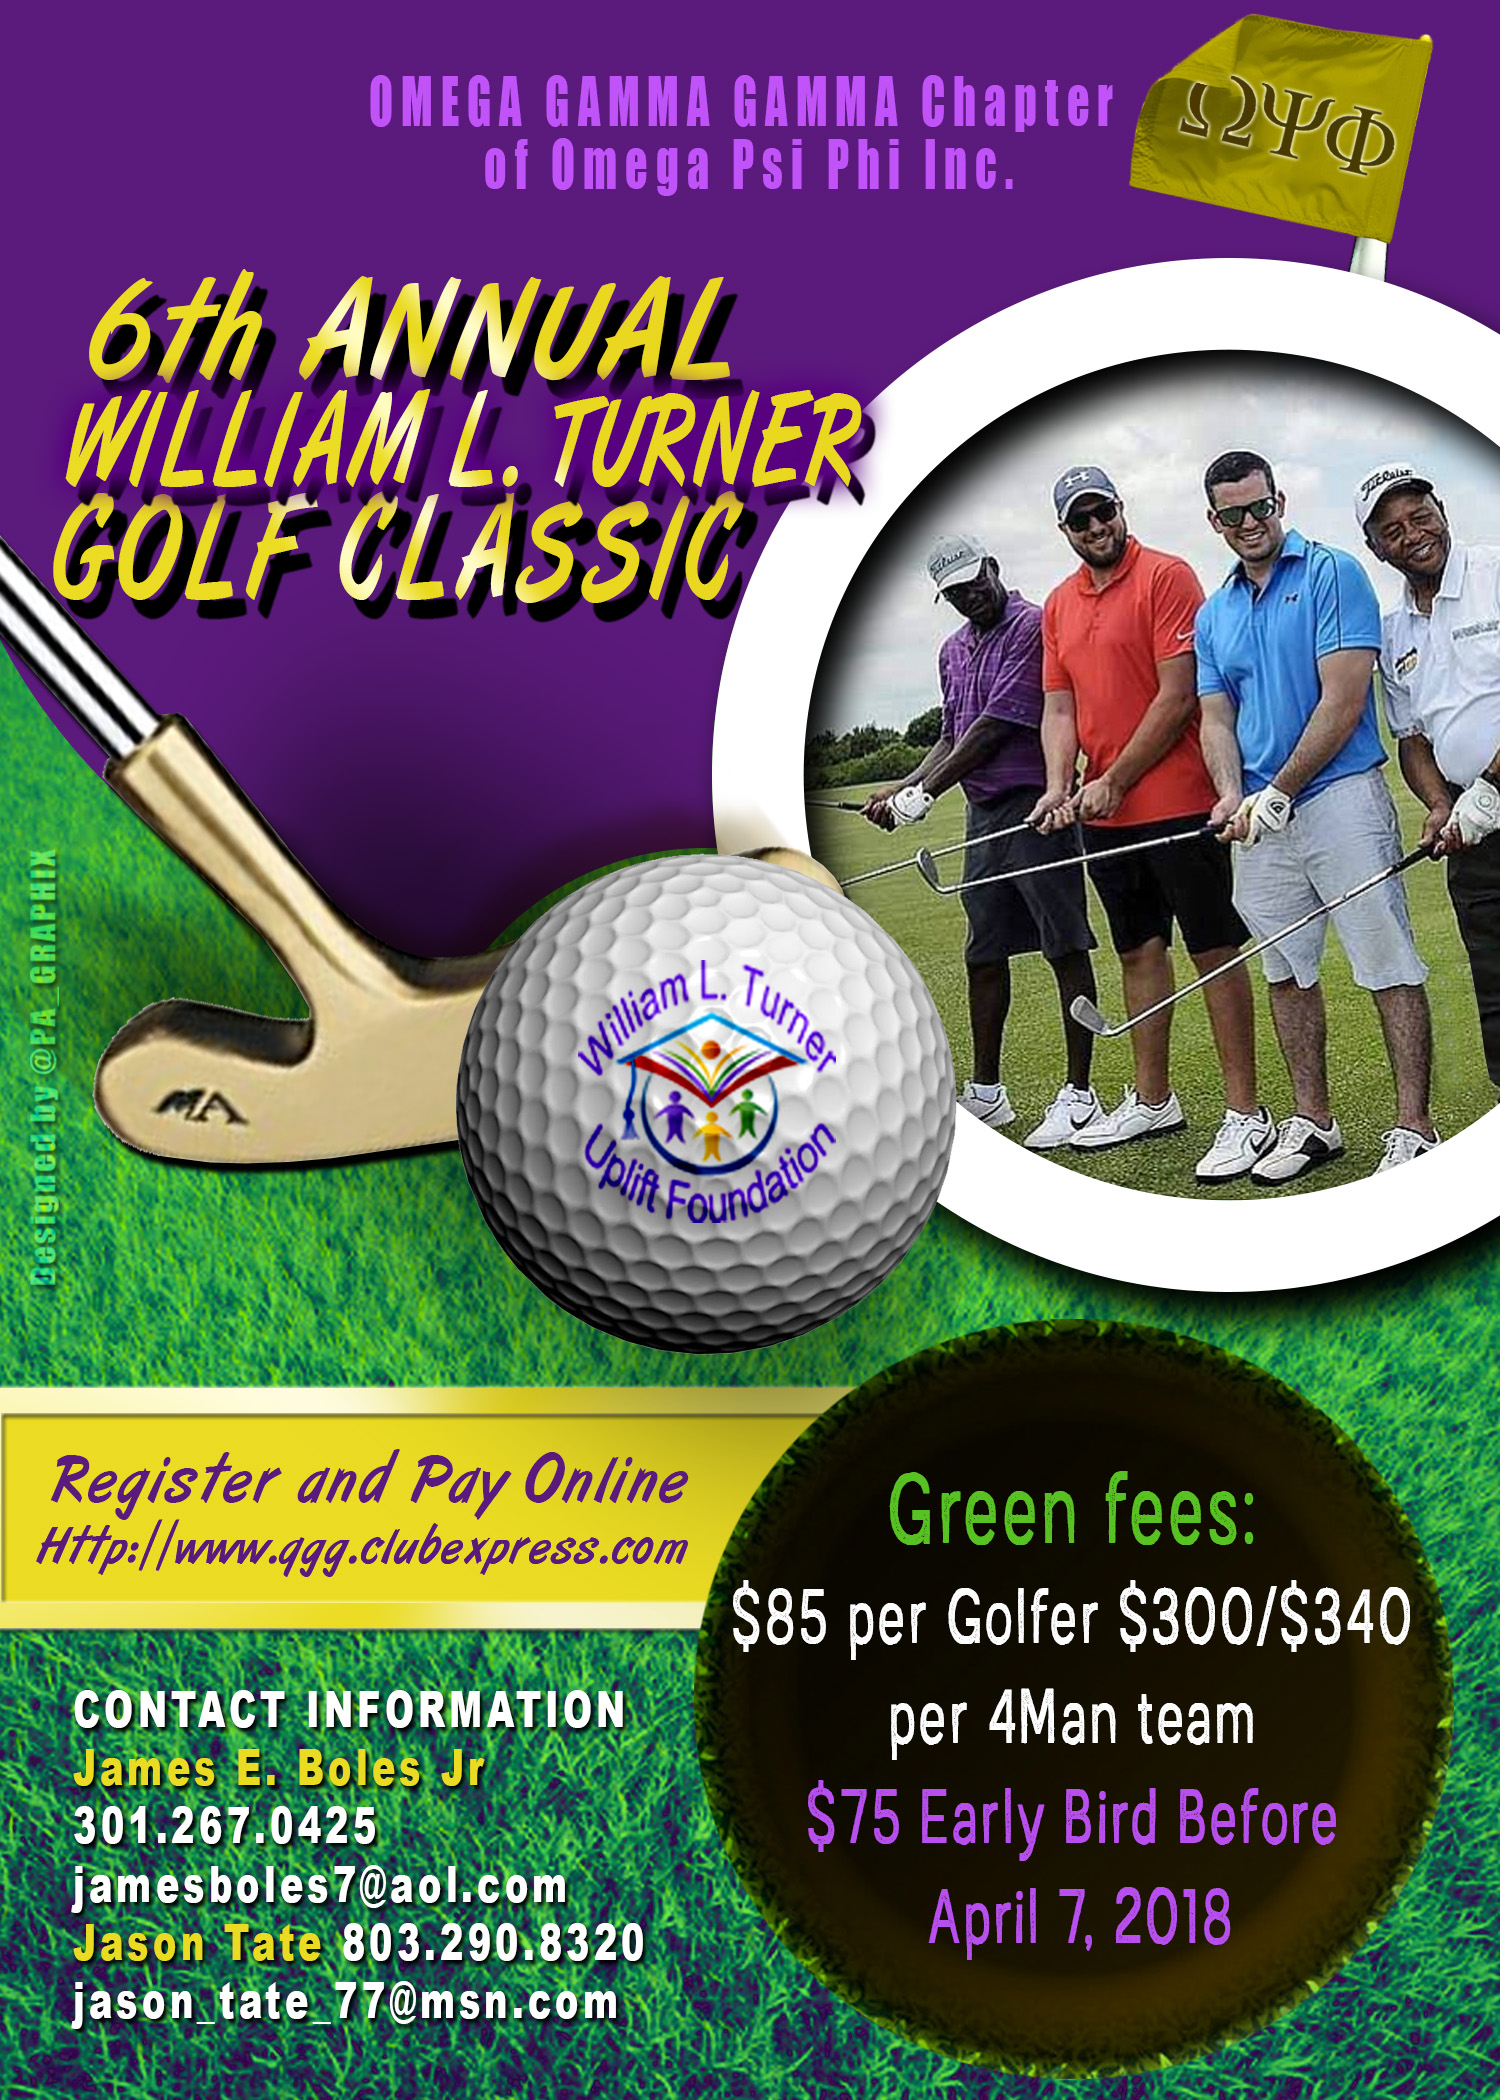 6TH ANNUAL WLT GOLF CLASSIC FLYER